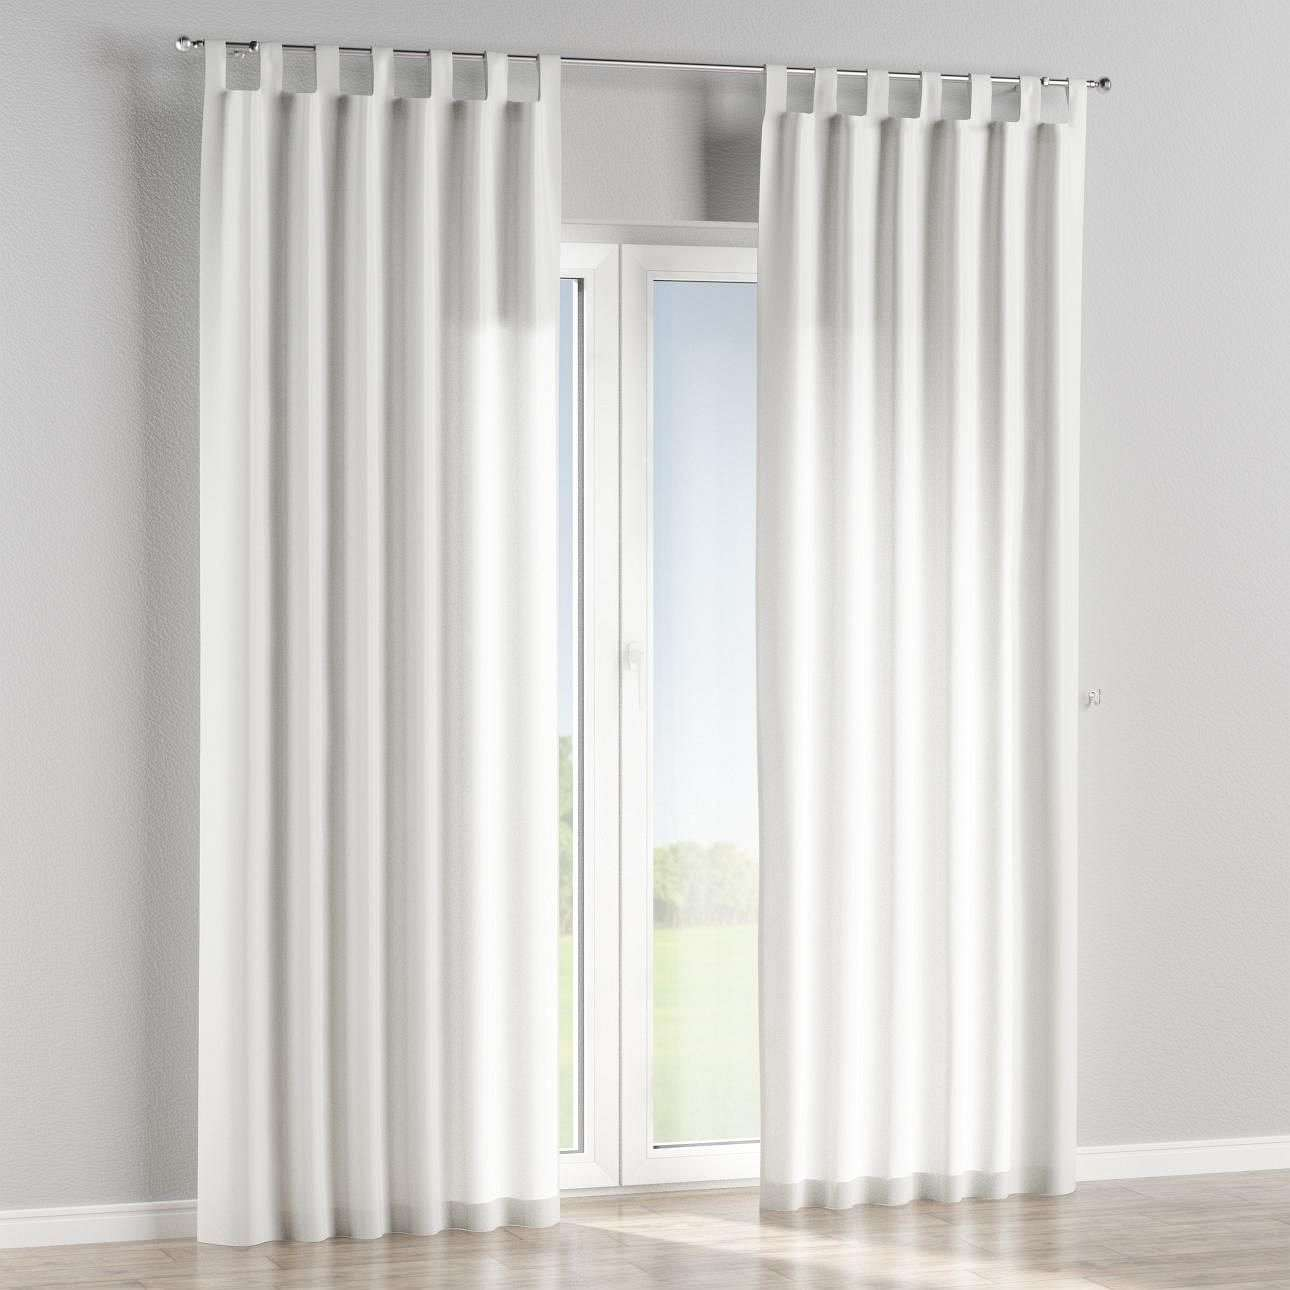 Tab top lined curtains in collection Norge, fabric: 140-97